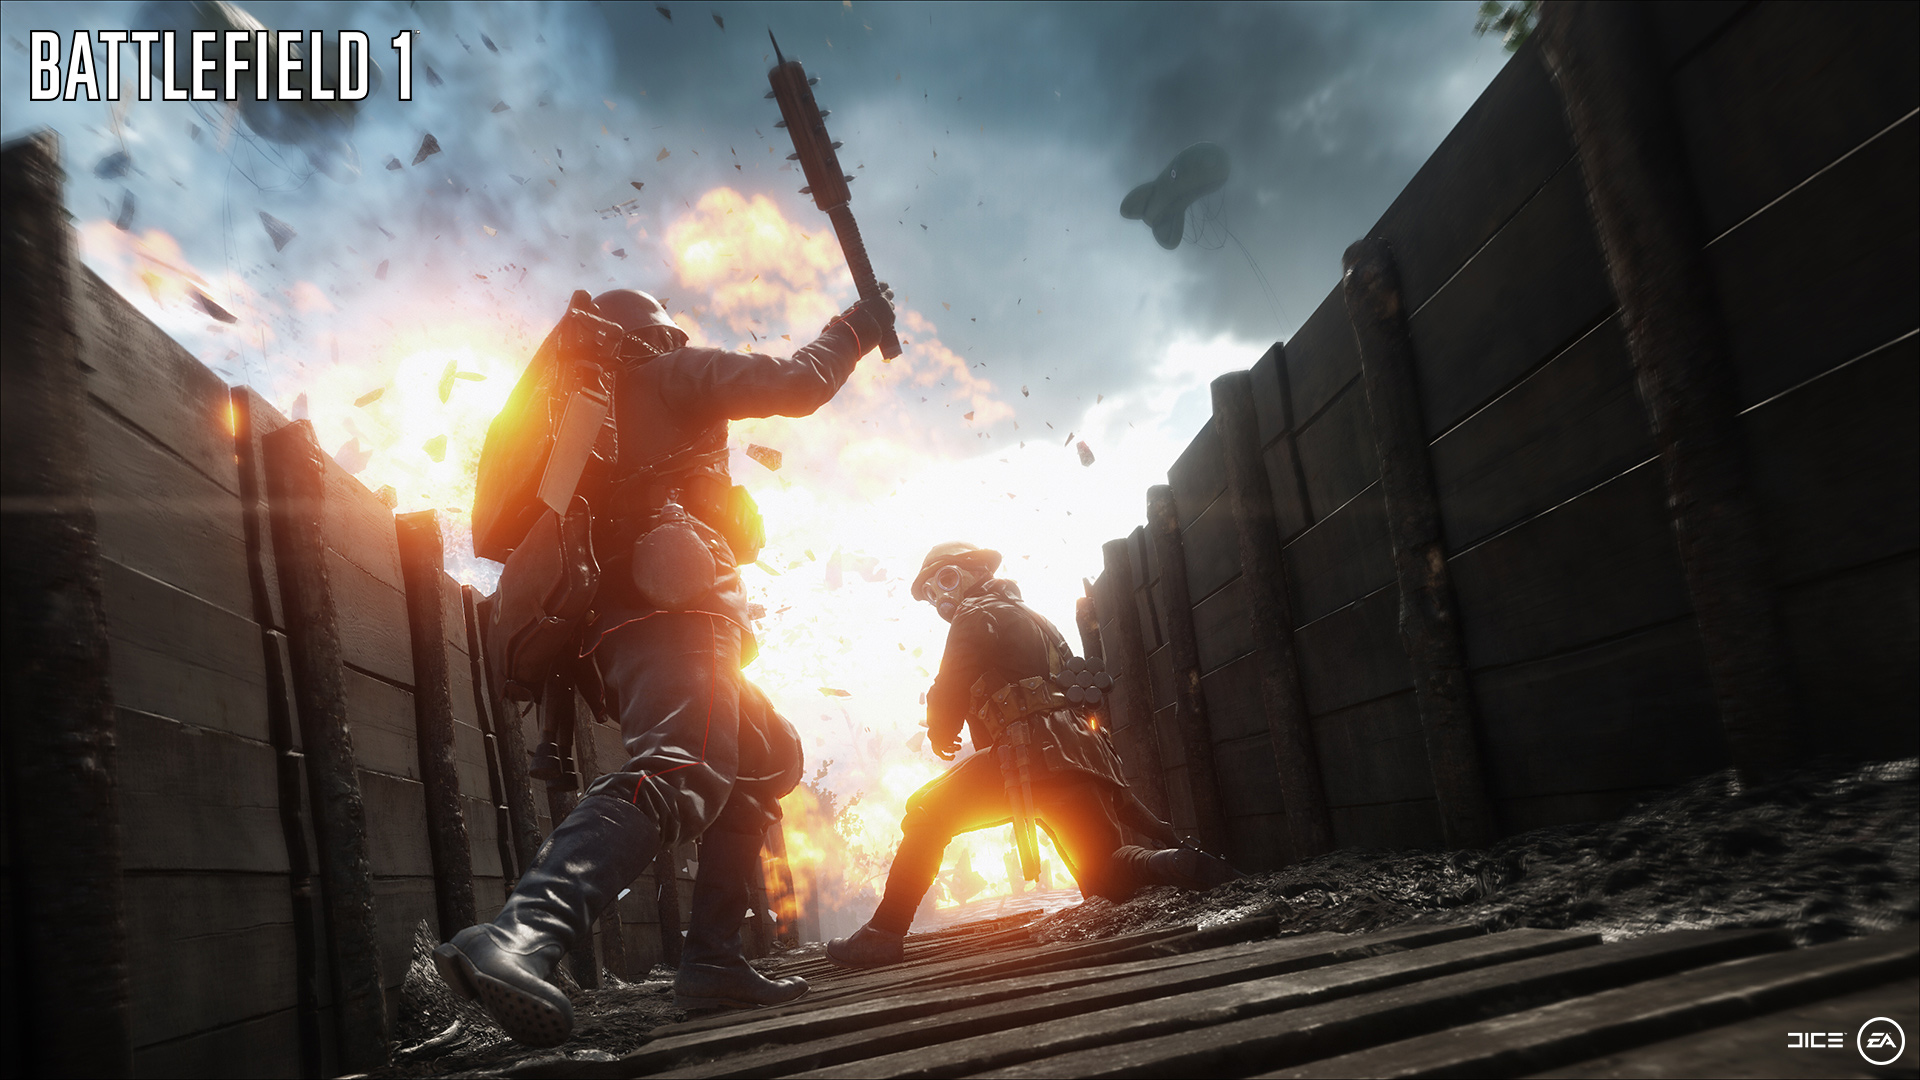 WATCH: 'Battlefield 1' Multiplayer Teaser Trailer